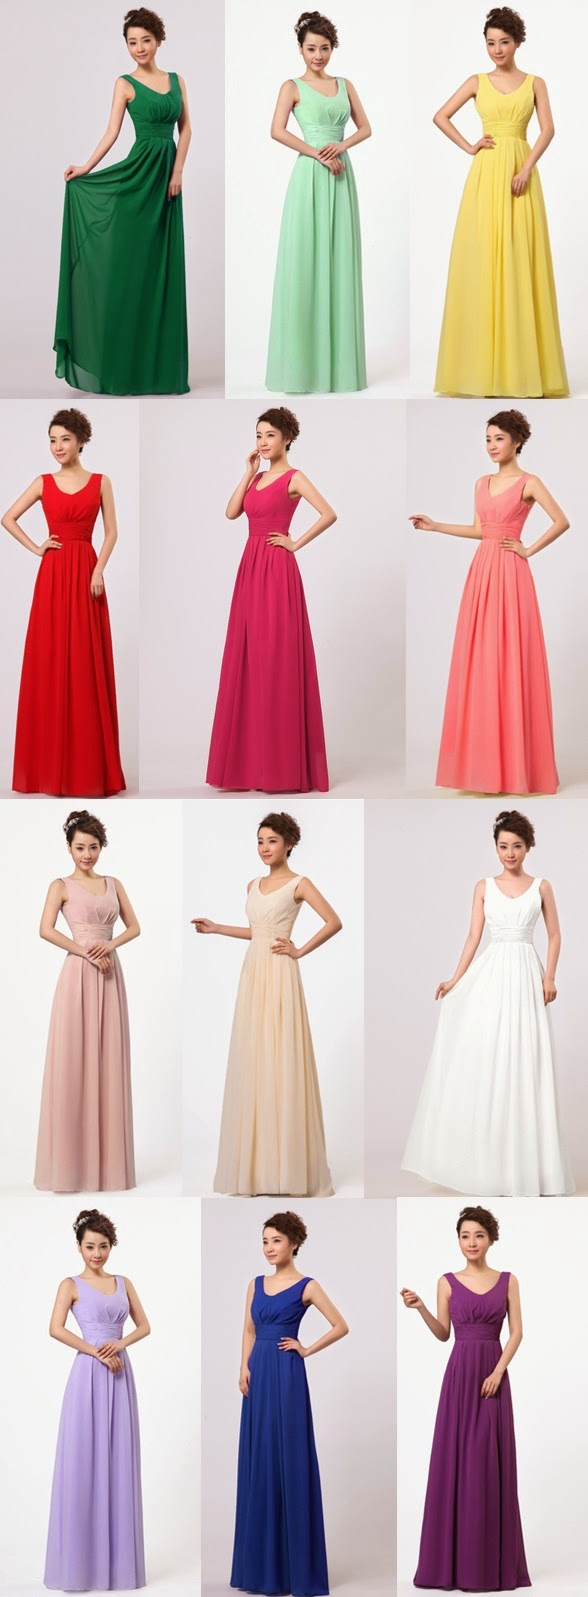 New 2015 Simple Sleeveless V-neck Bridesmaids Long Dress